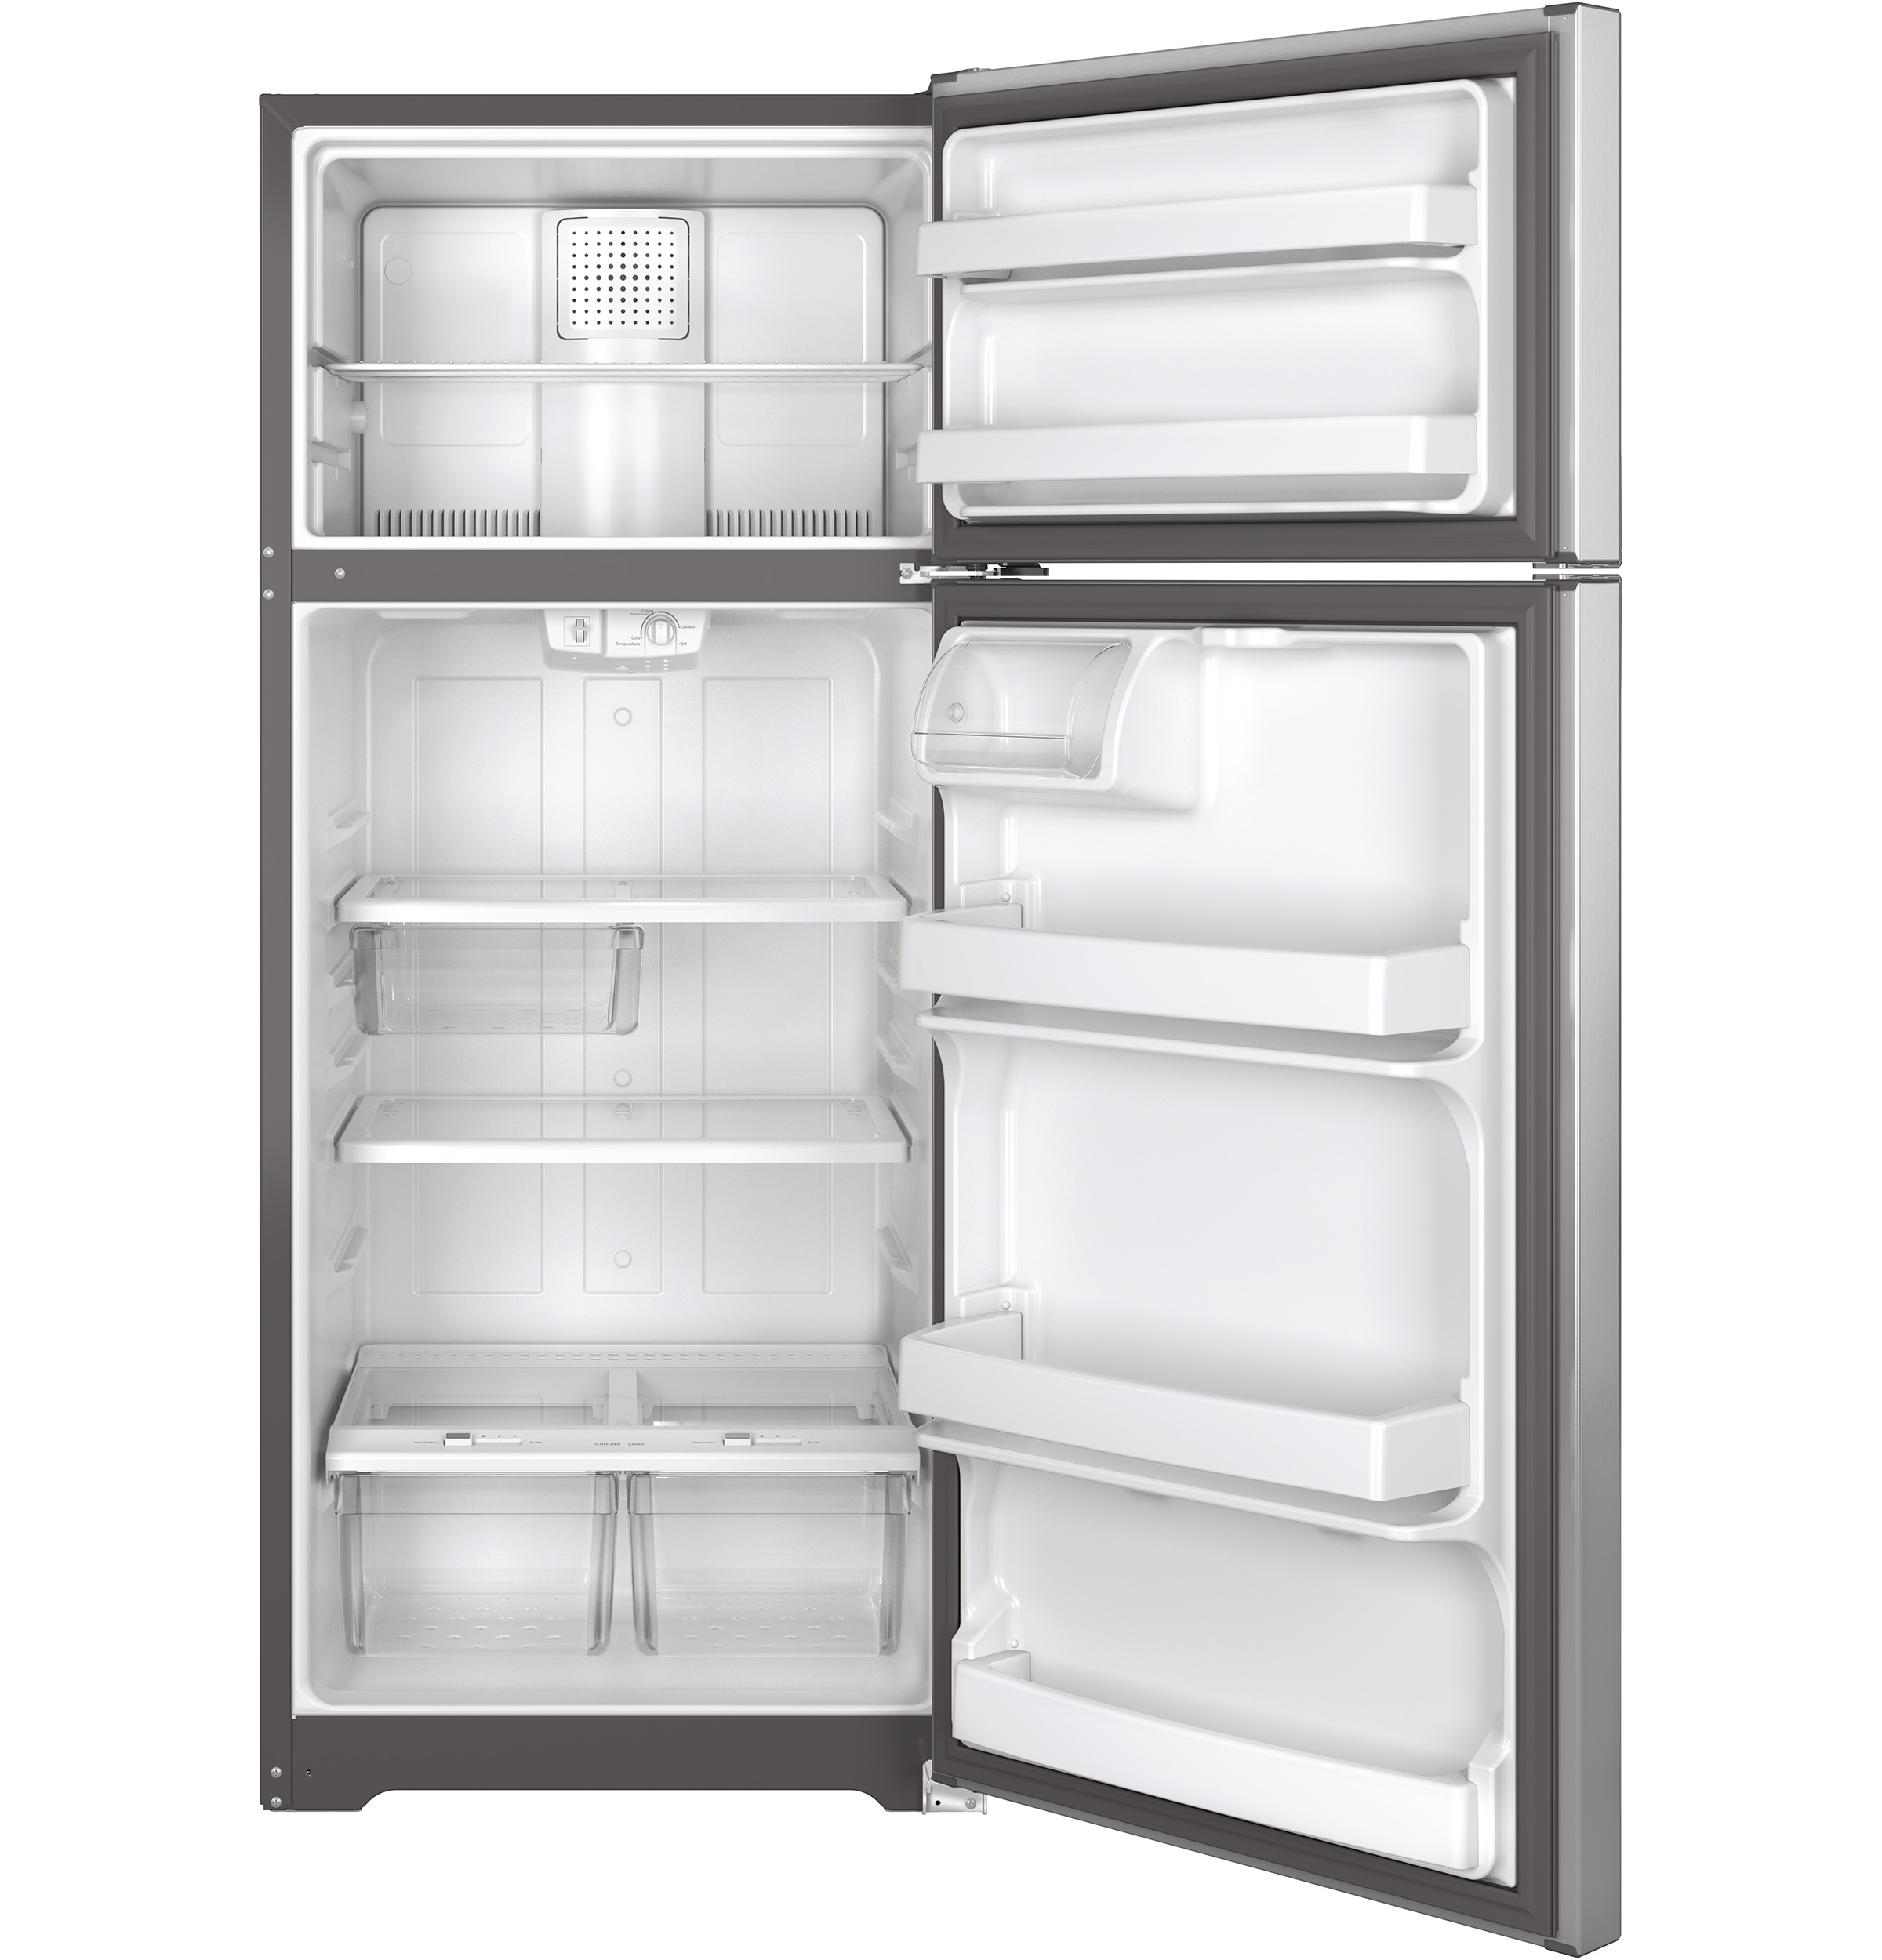 Ge 175 Cu Ft Top Freezer Refrigerator Gts18gshss Appliances Dryer Repair Diagram Additionally Haier Wine Cooler Parts Product Image